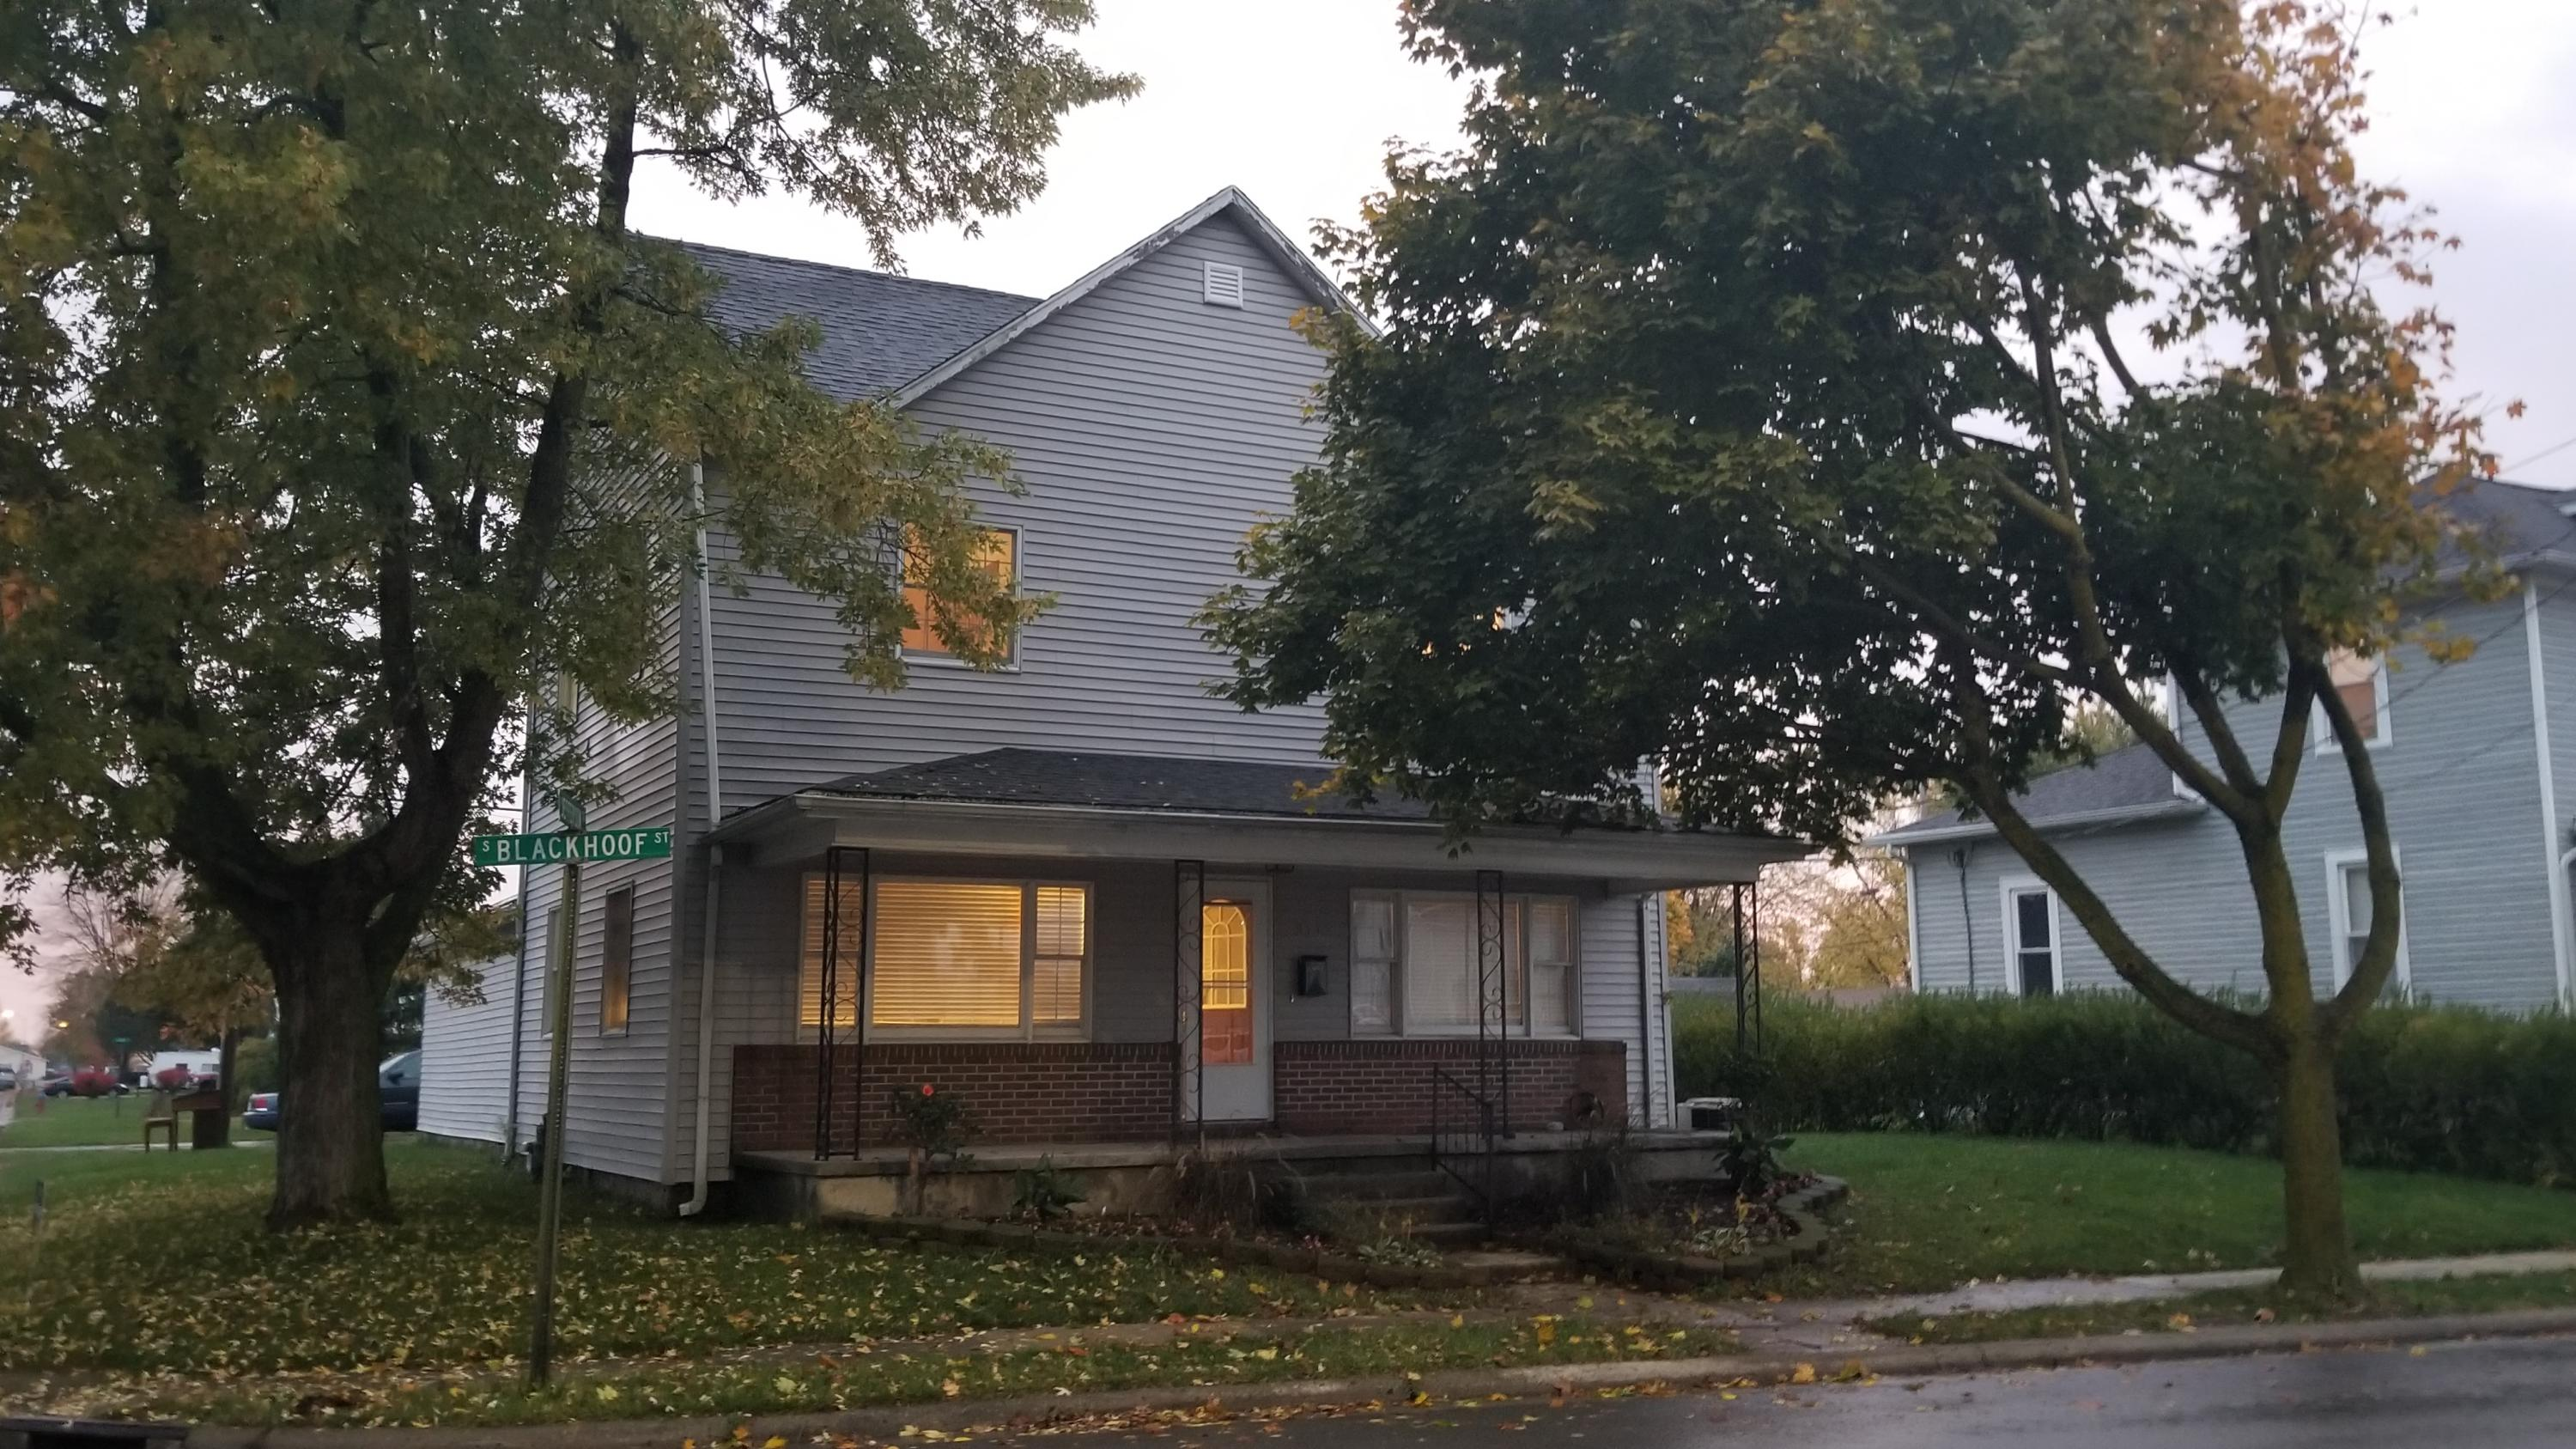 911 S Blackhoof Street Property Photo - Wapakoneta, OH real estate listing